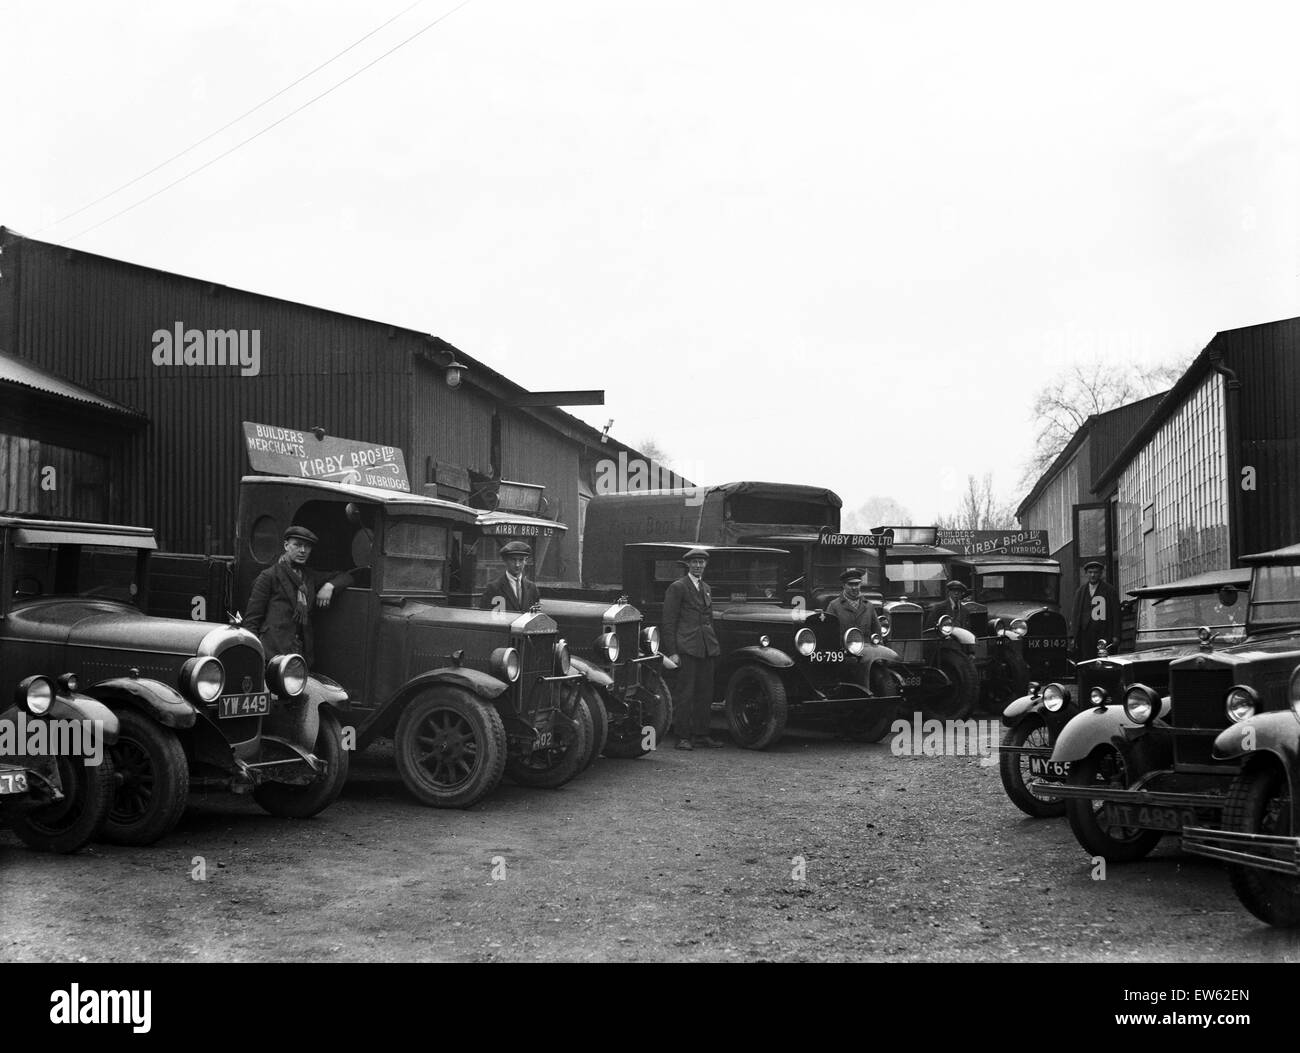 The staff of Uxbridge builders merchants Kirby Brothers pose beside their lorries and vans, London. Circa 1930 - Stock Image